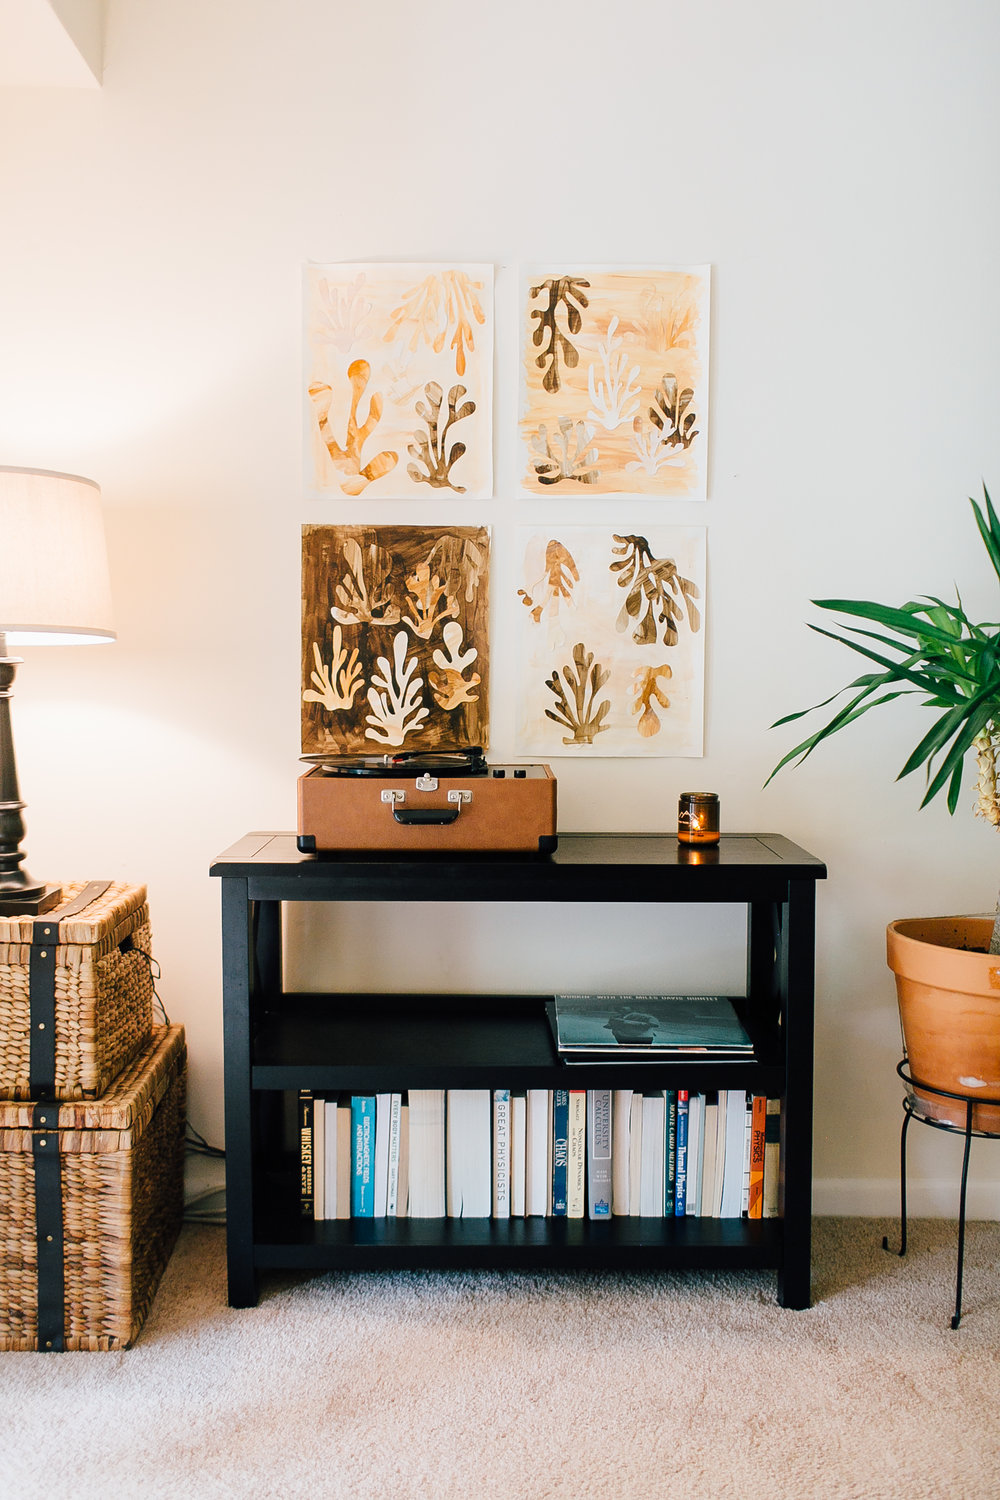 How to Make a Small Space Feel Larger - MRFP 05.jpg